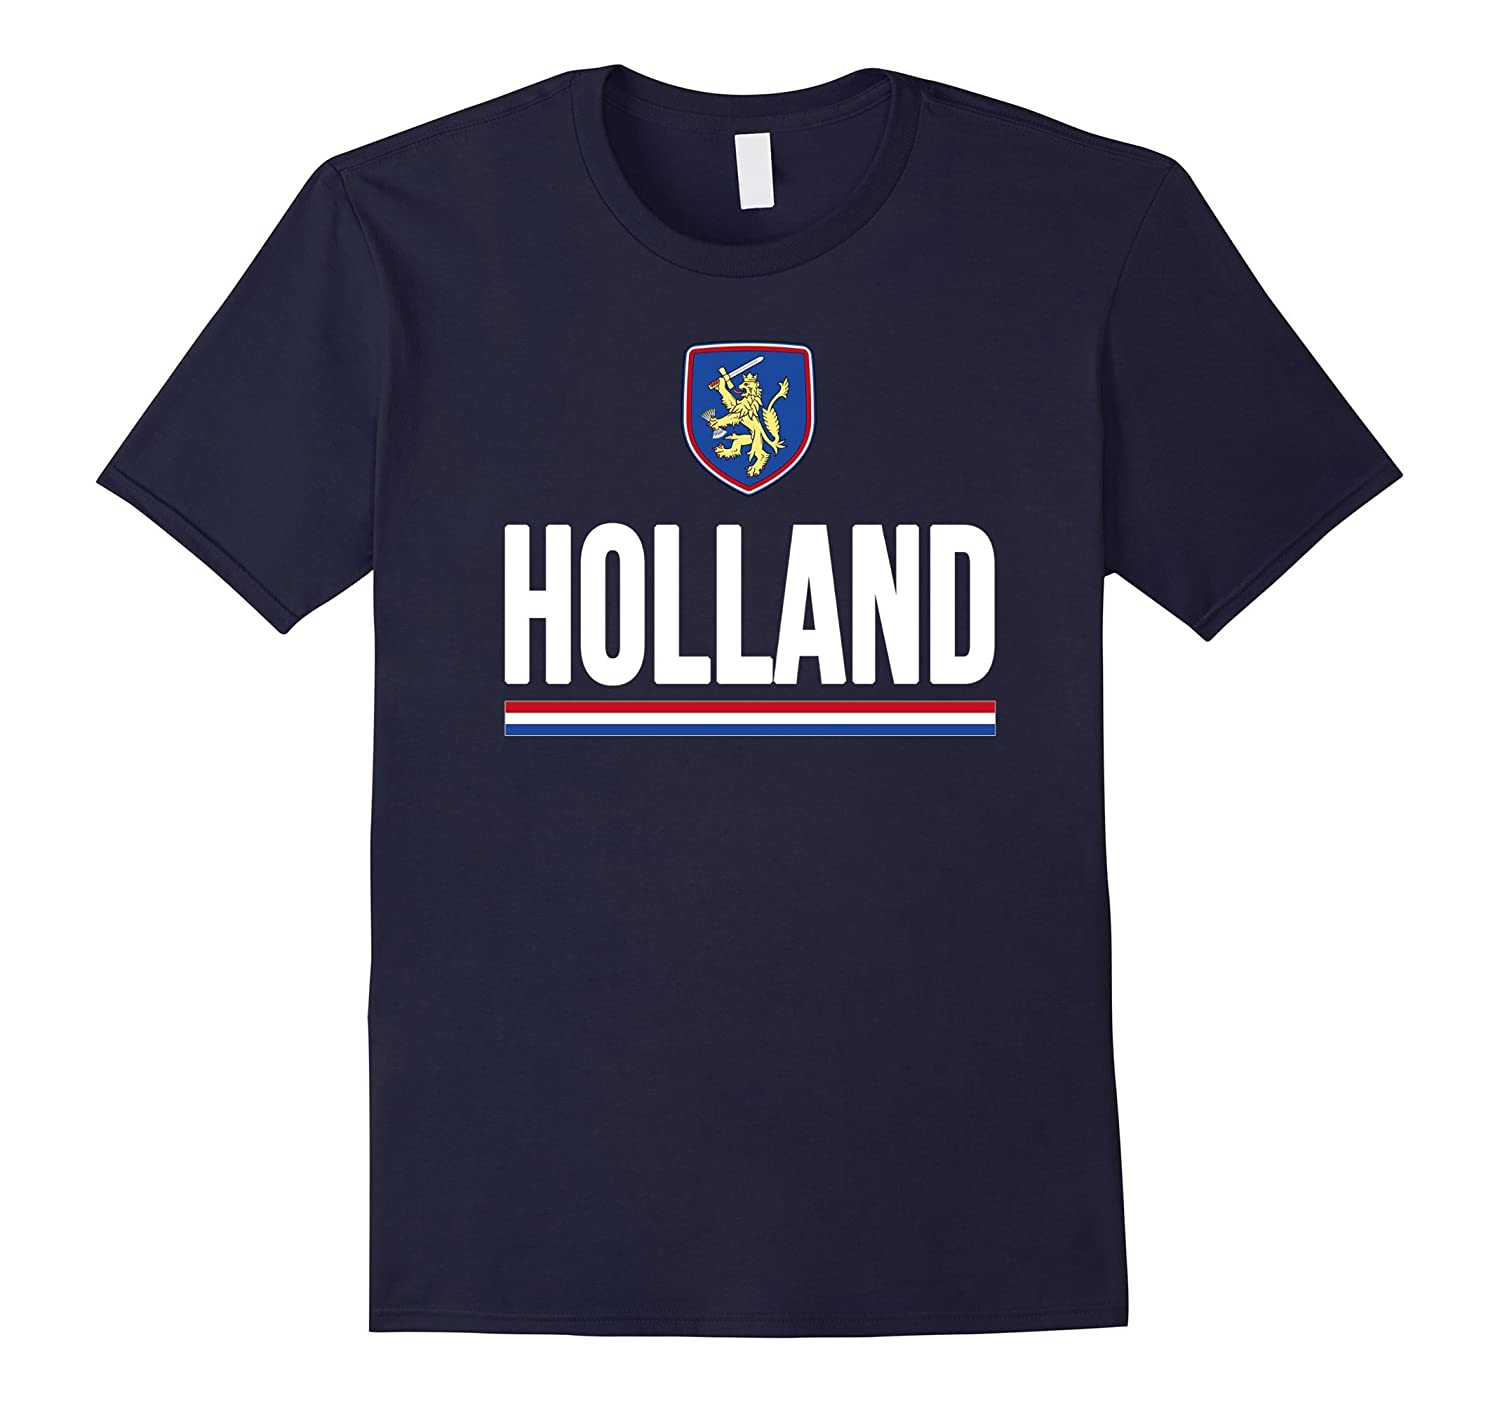 Holland T-shirt Netherlands Flag Souvenir Travel Vacation-TD